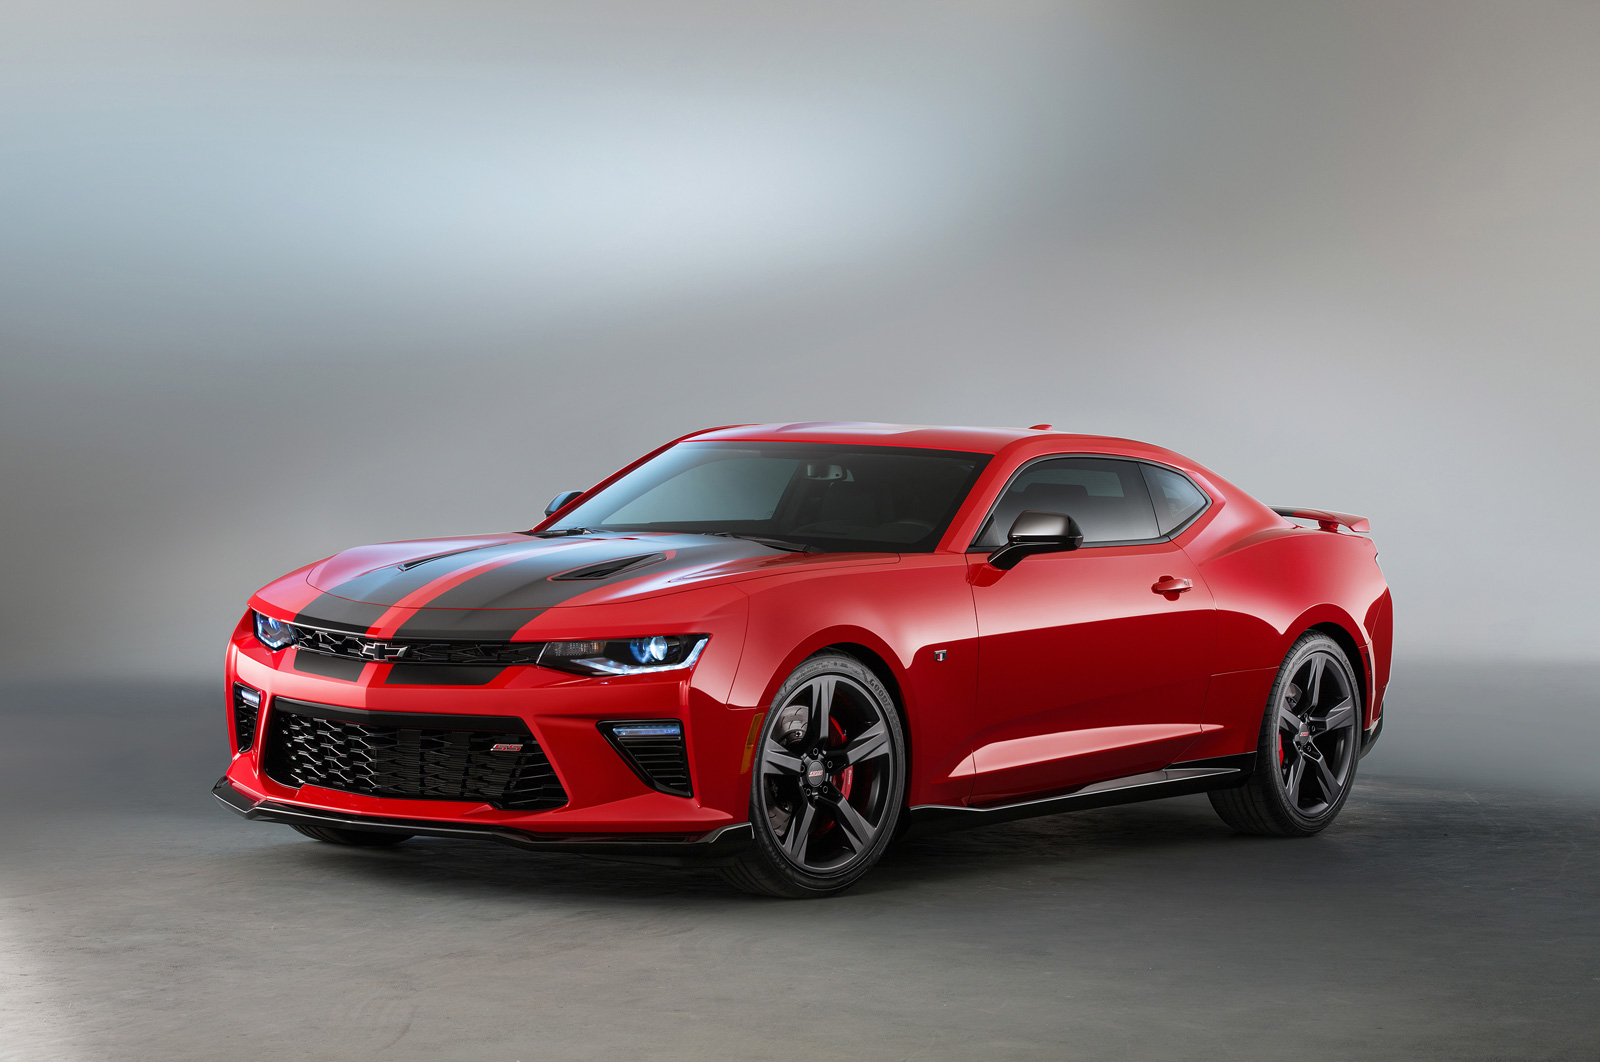 2016 Chevrolet Camaro Ss Gets Black Red Accent Packages